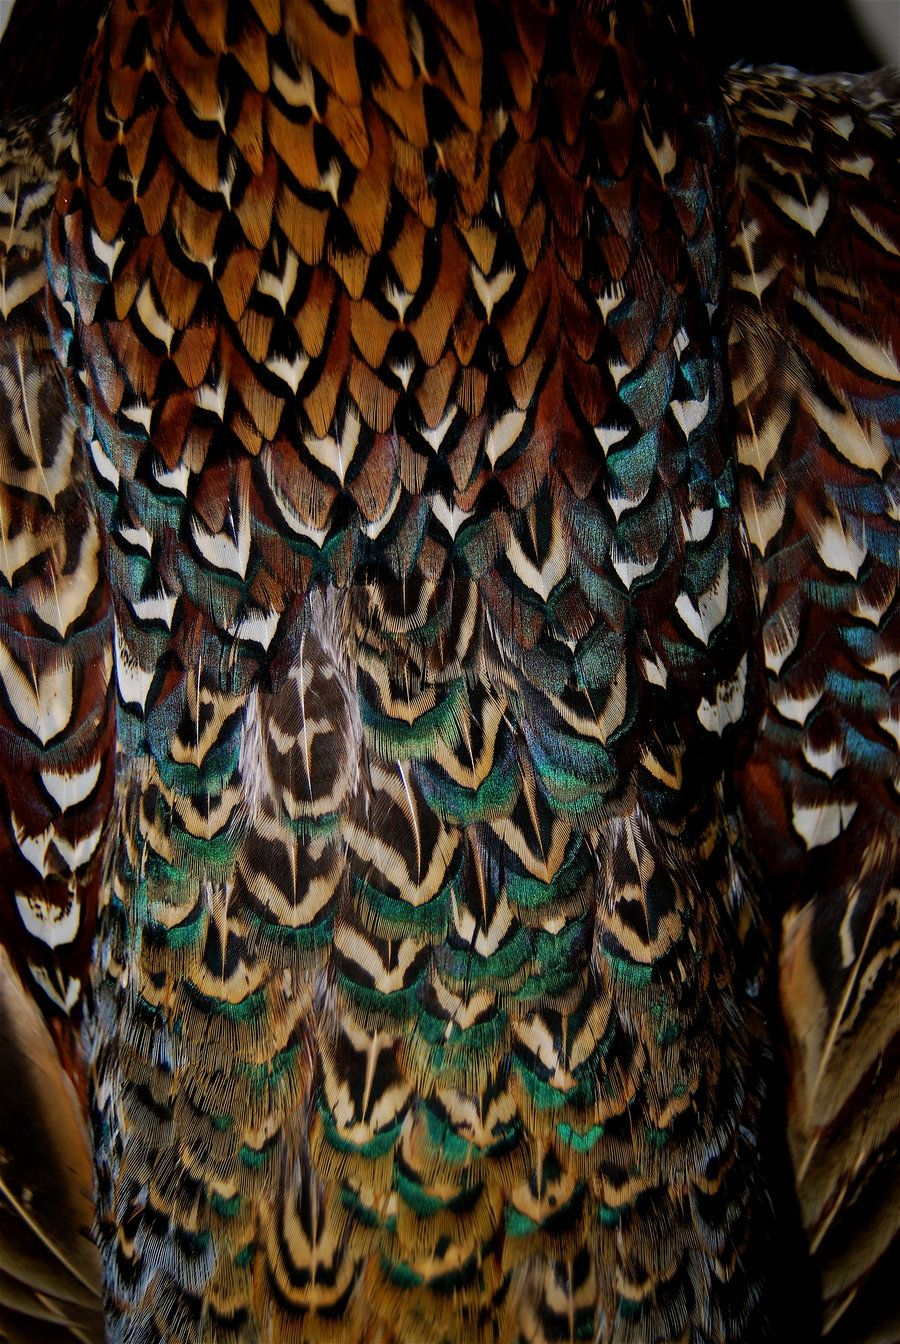 Plumage | Patterns in nature, Feather art, Texture